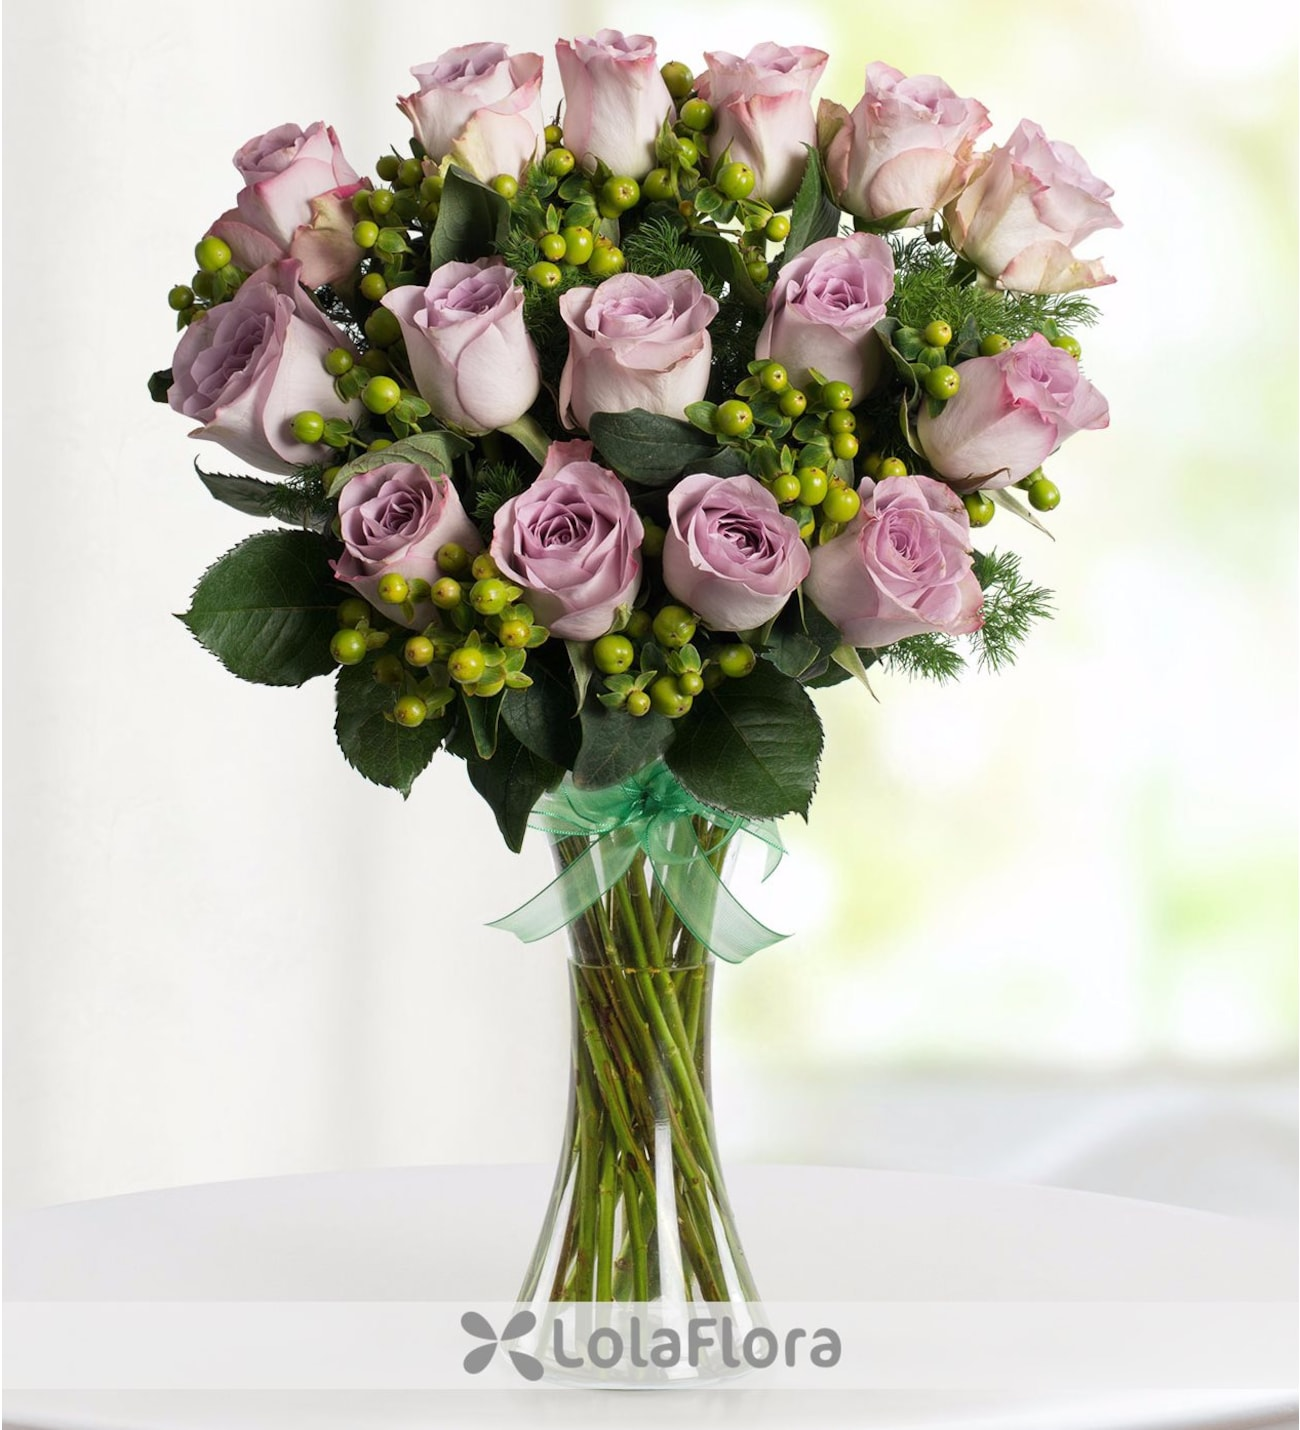 81a7eaf8b6a7 Sweetness - Large Bouquet of 50 Lilac Roses - LolaFlora